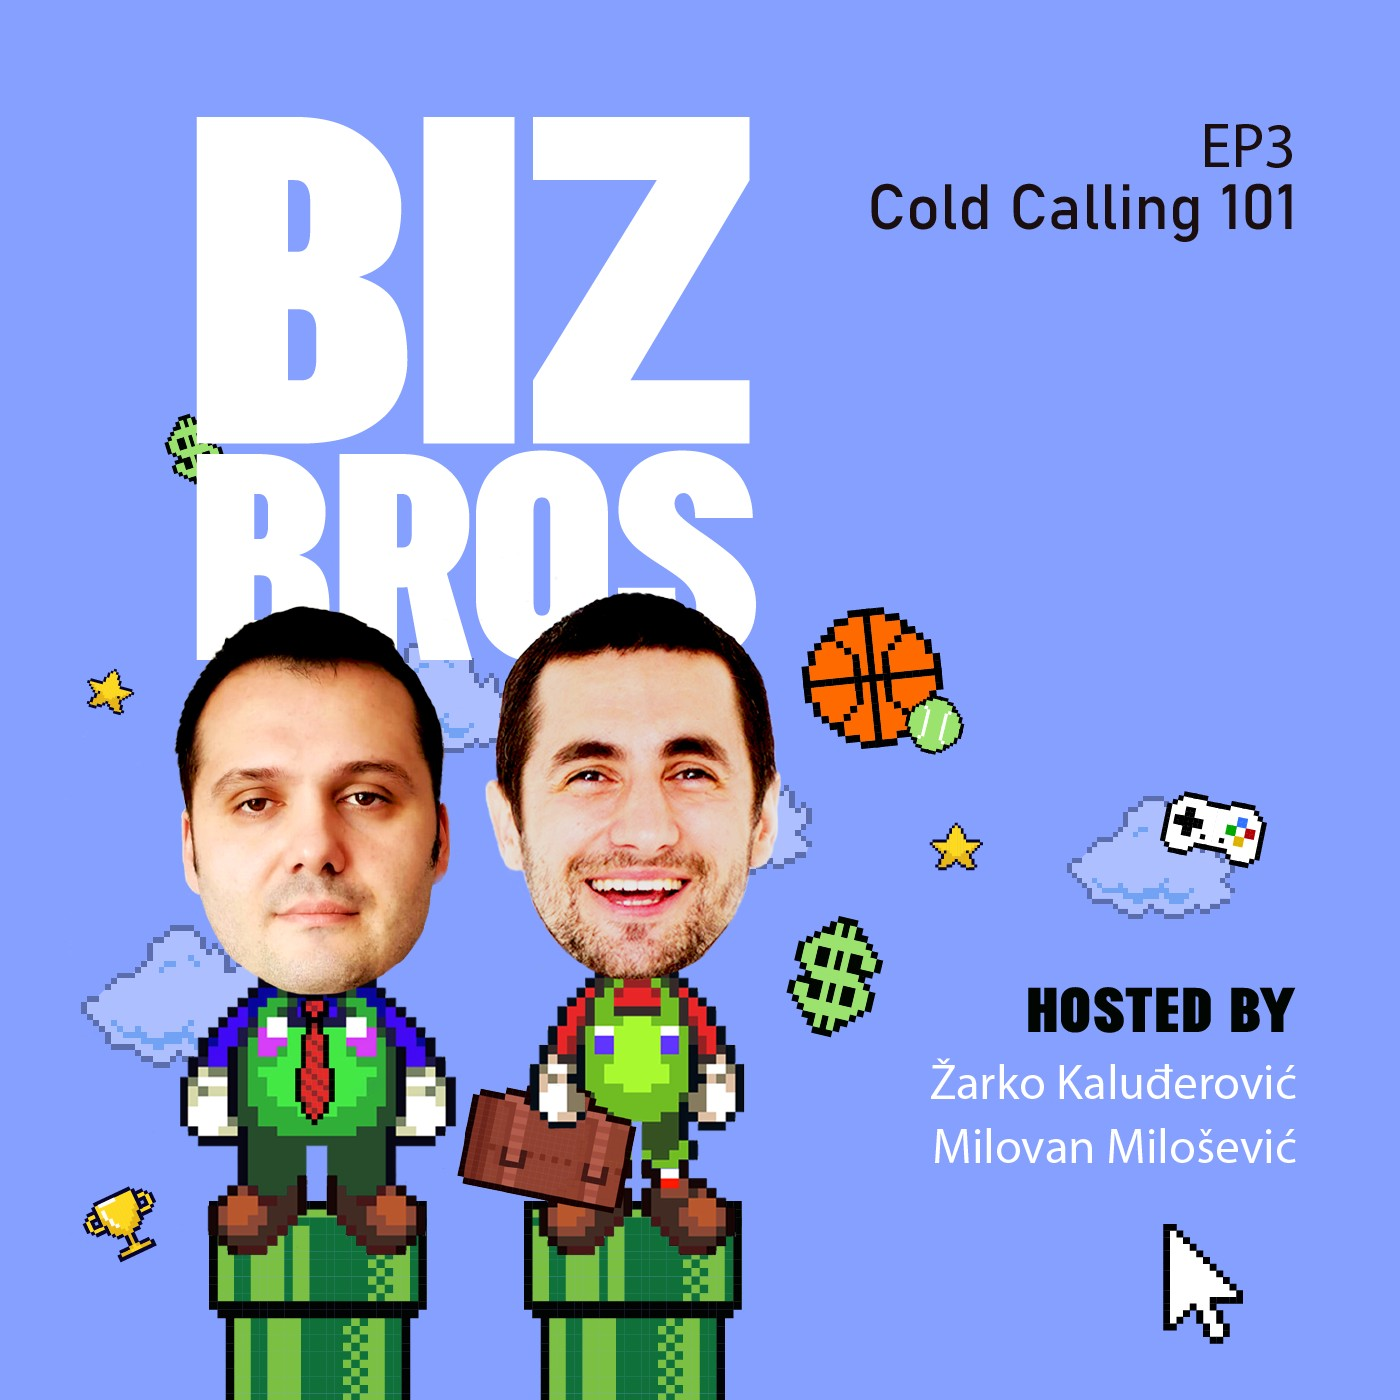 EP3 Cold Calling 101